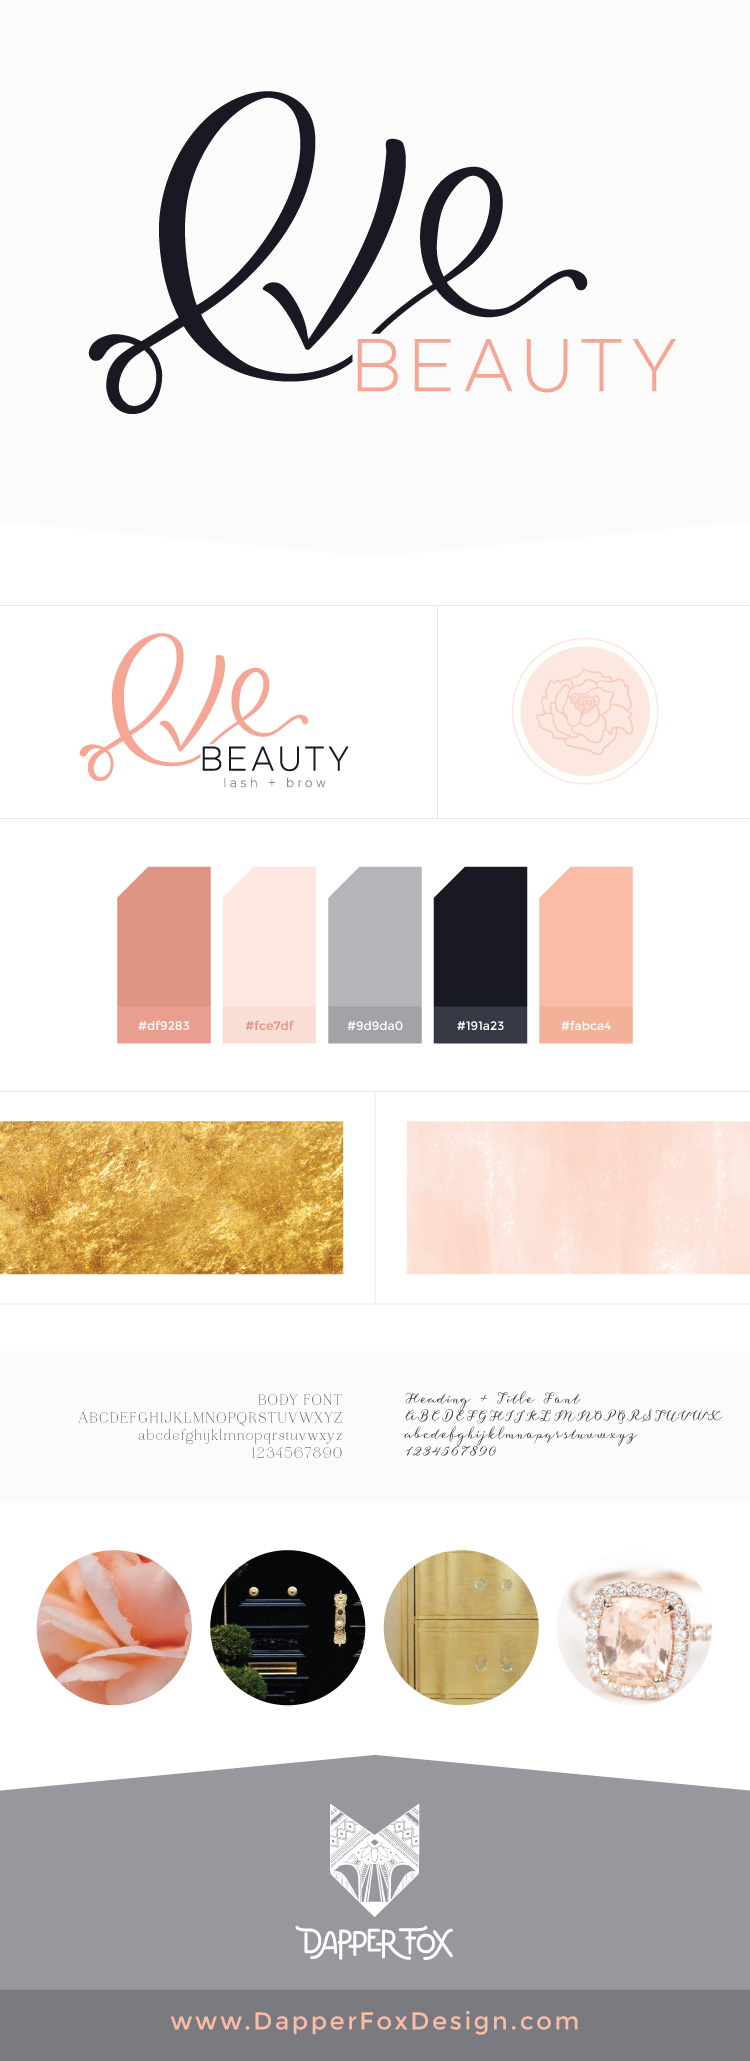 EVE BEAUTY | brand board and logo design — by Dapper Fox Design - Branding + Website Design. Script font logo, hand drawn logo design, feminine logo, modern, pink gold grey custom script design calligraphy font